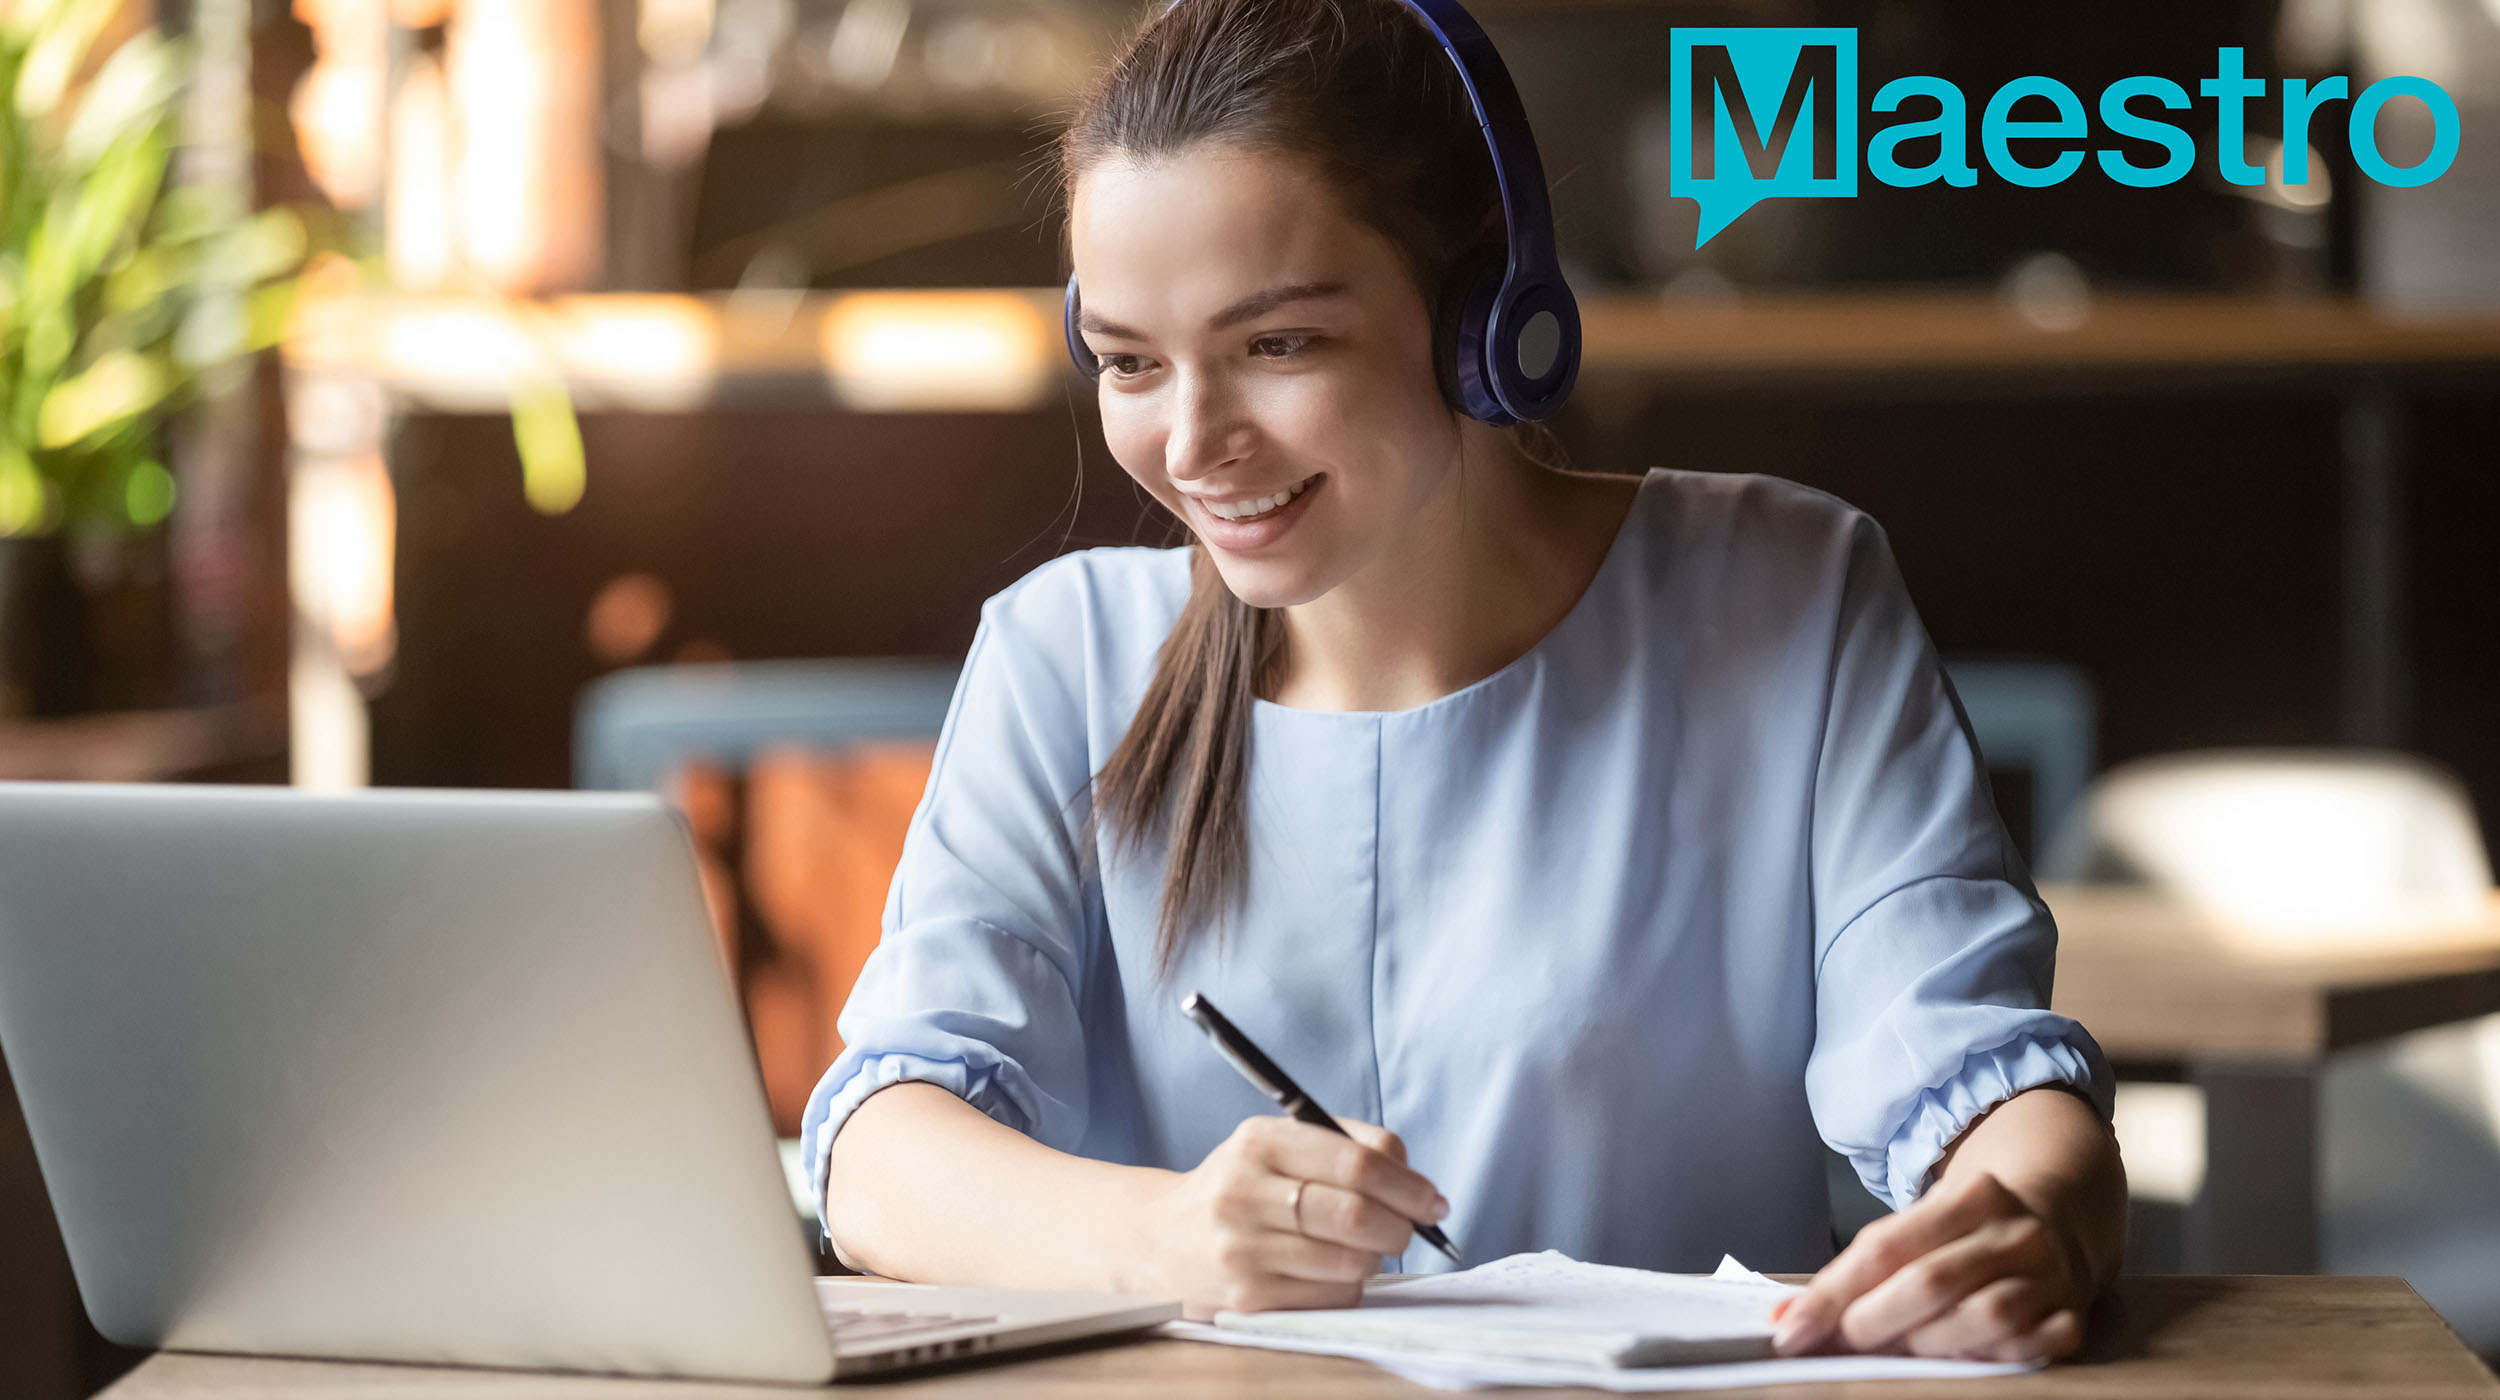 Training Evergreen Article Image - Maestro PMS Shares the Top 5 Benefits of Remote Training in Today's New Normal - Innovative Property Management Software Solutions Powering Hotels, Resorts & Multi‑Property Groups.